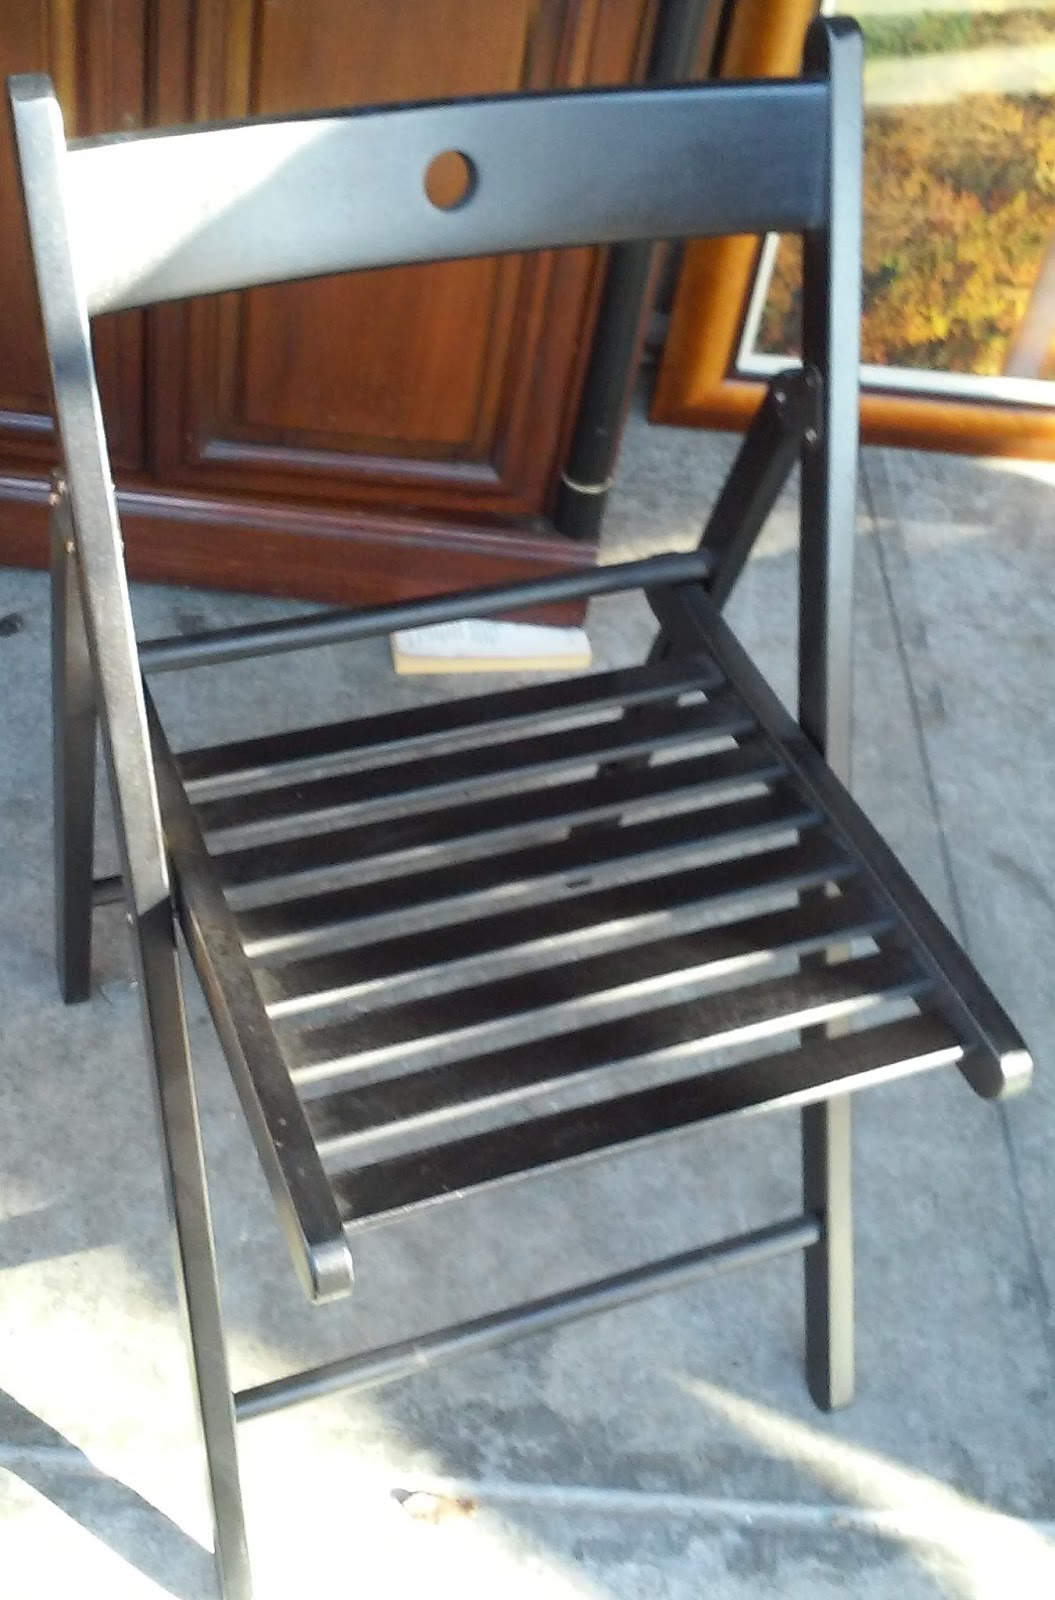 Modern Folding Chair Spotlight Covers Au Uhuru Furniture And Collectibles Sold Wood